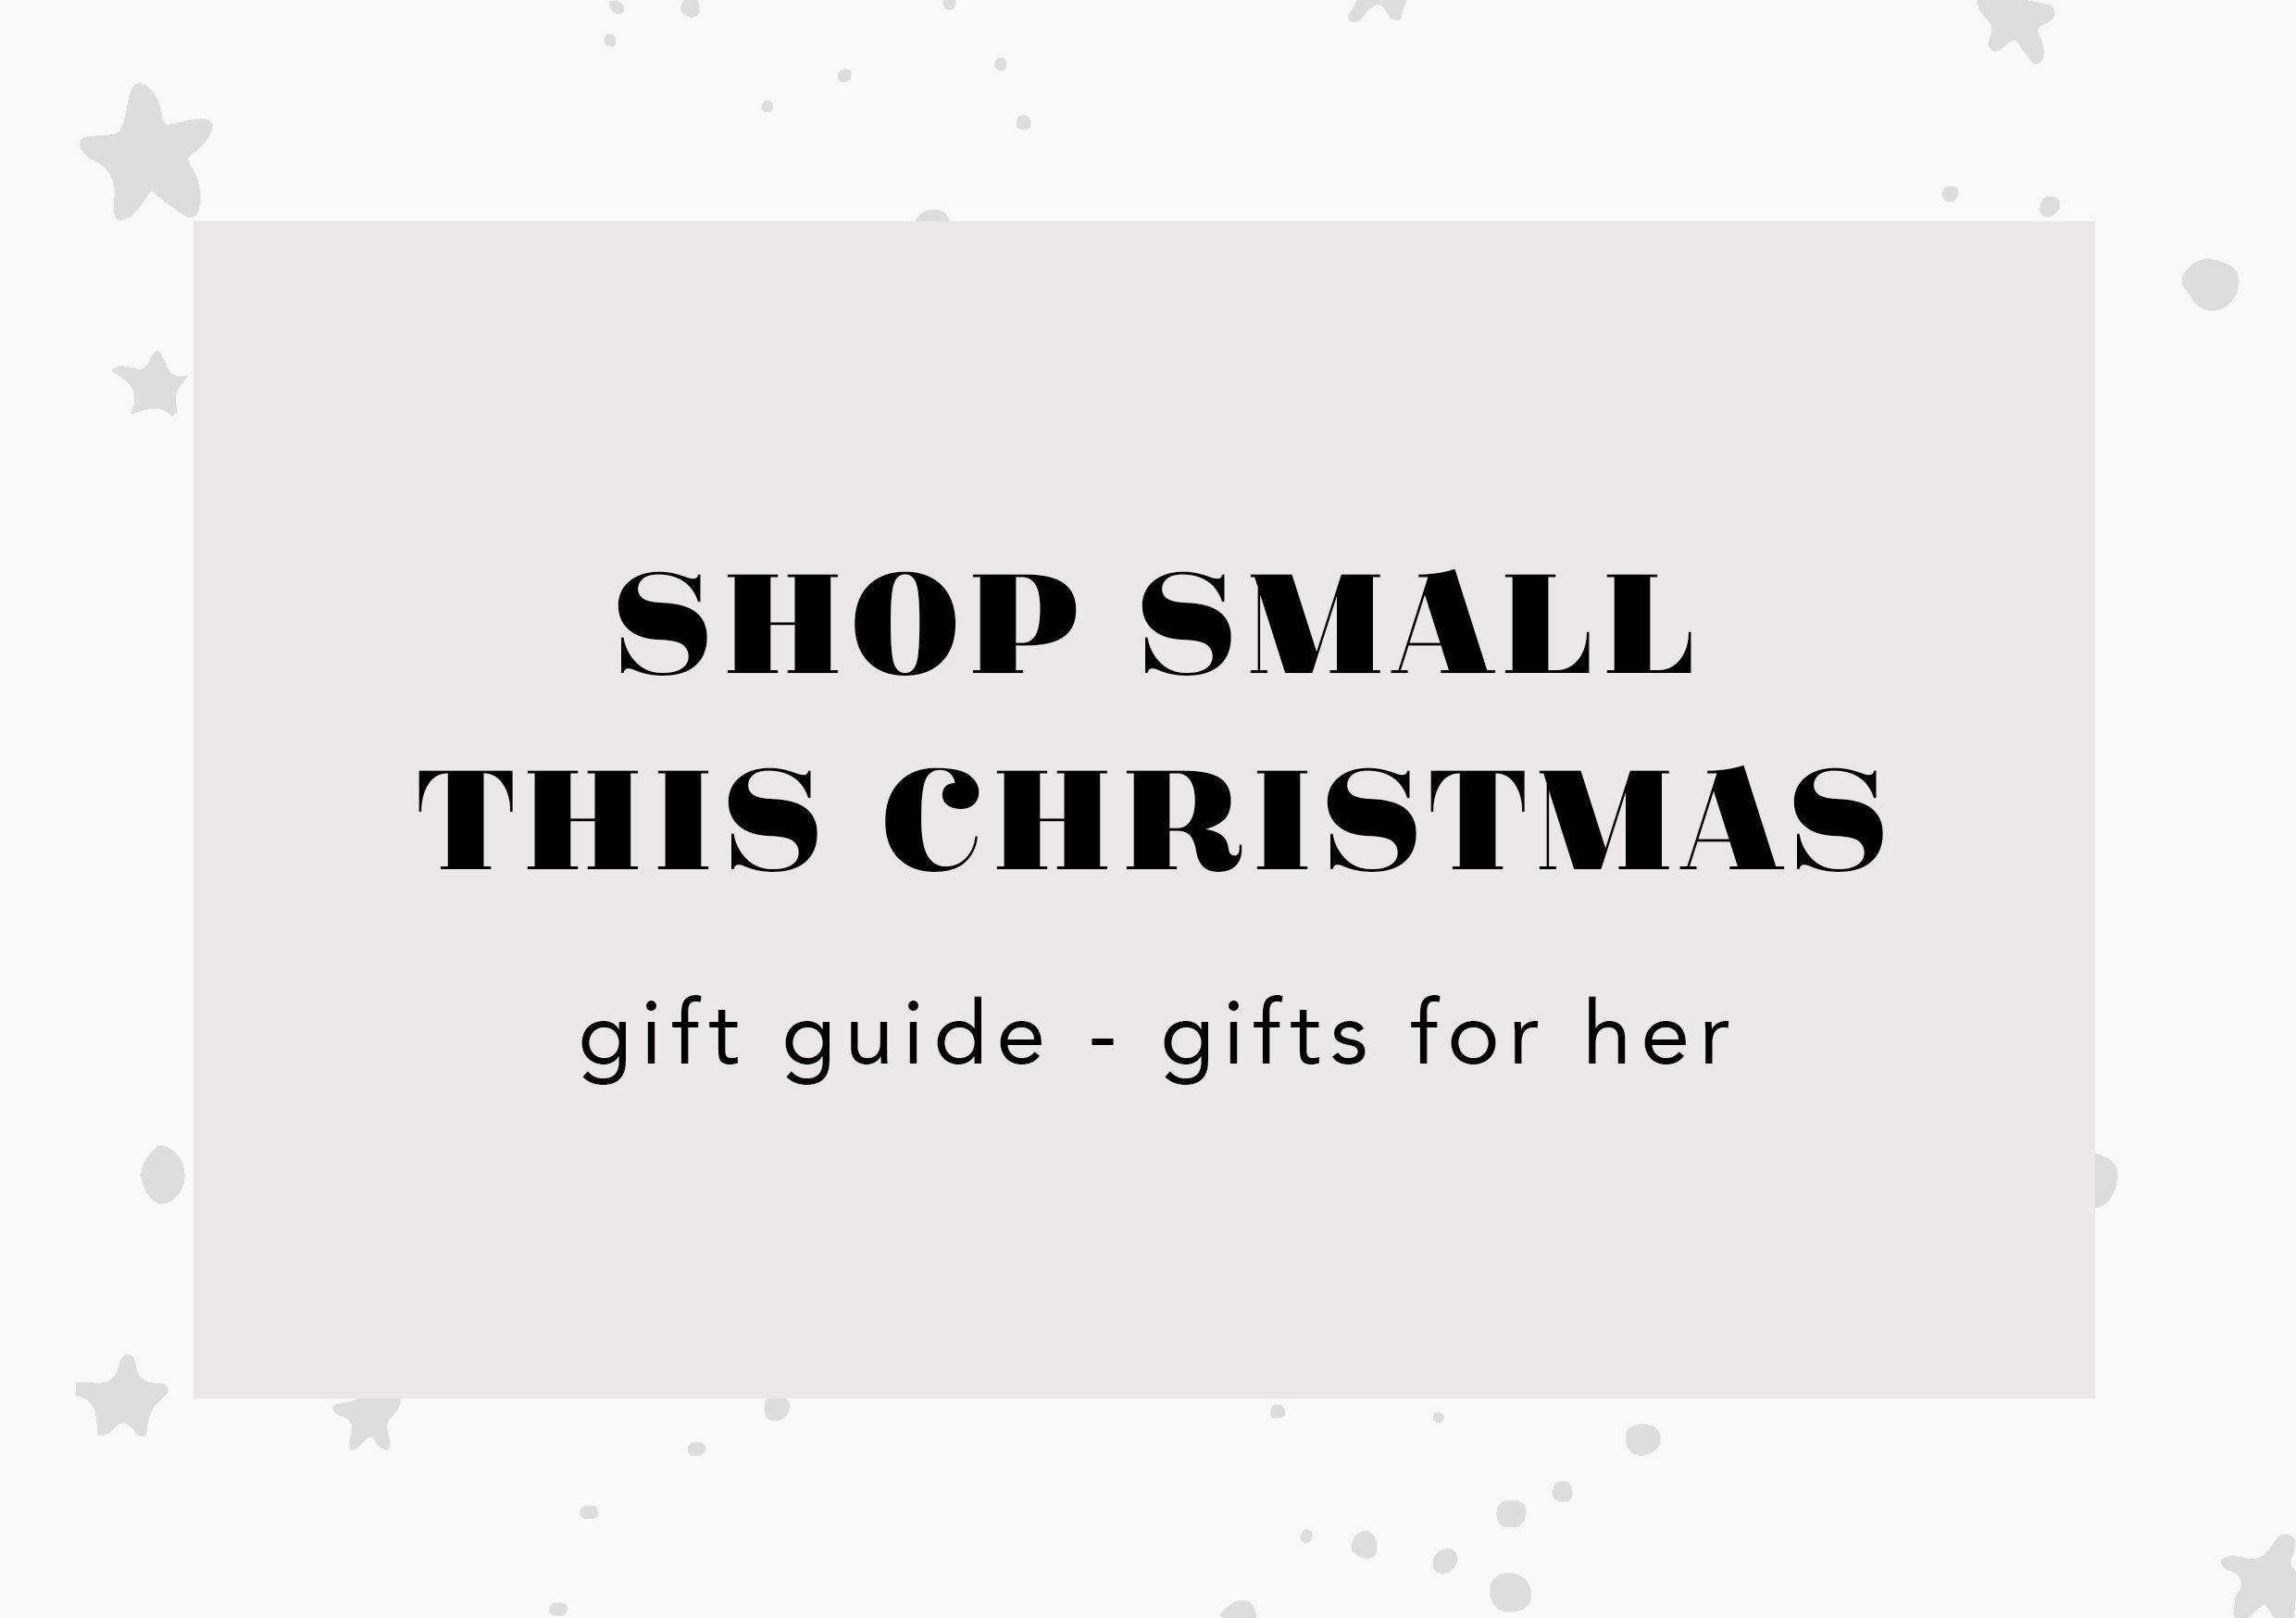 shop small this christmas gift guide - gifts for her